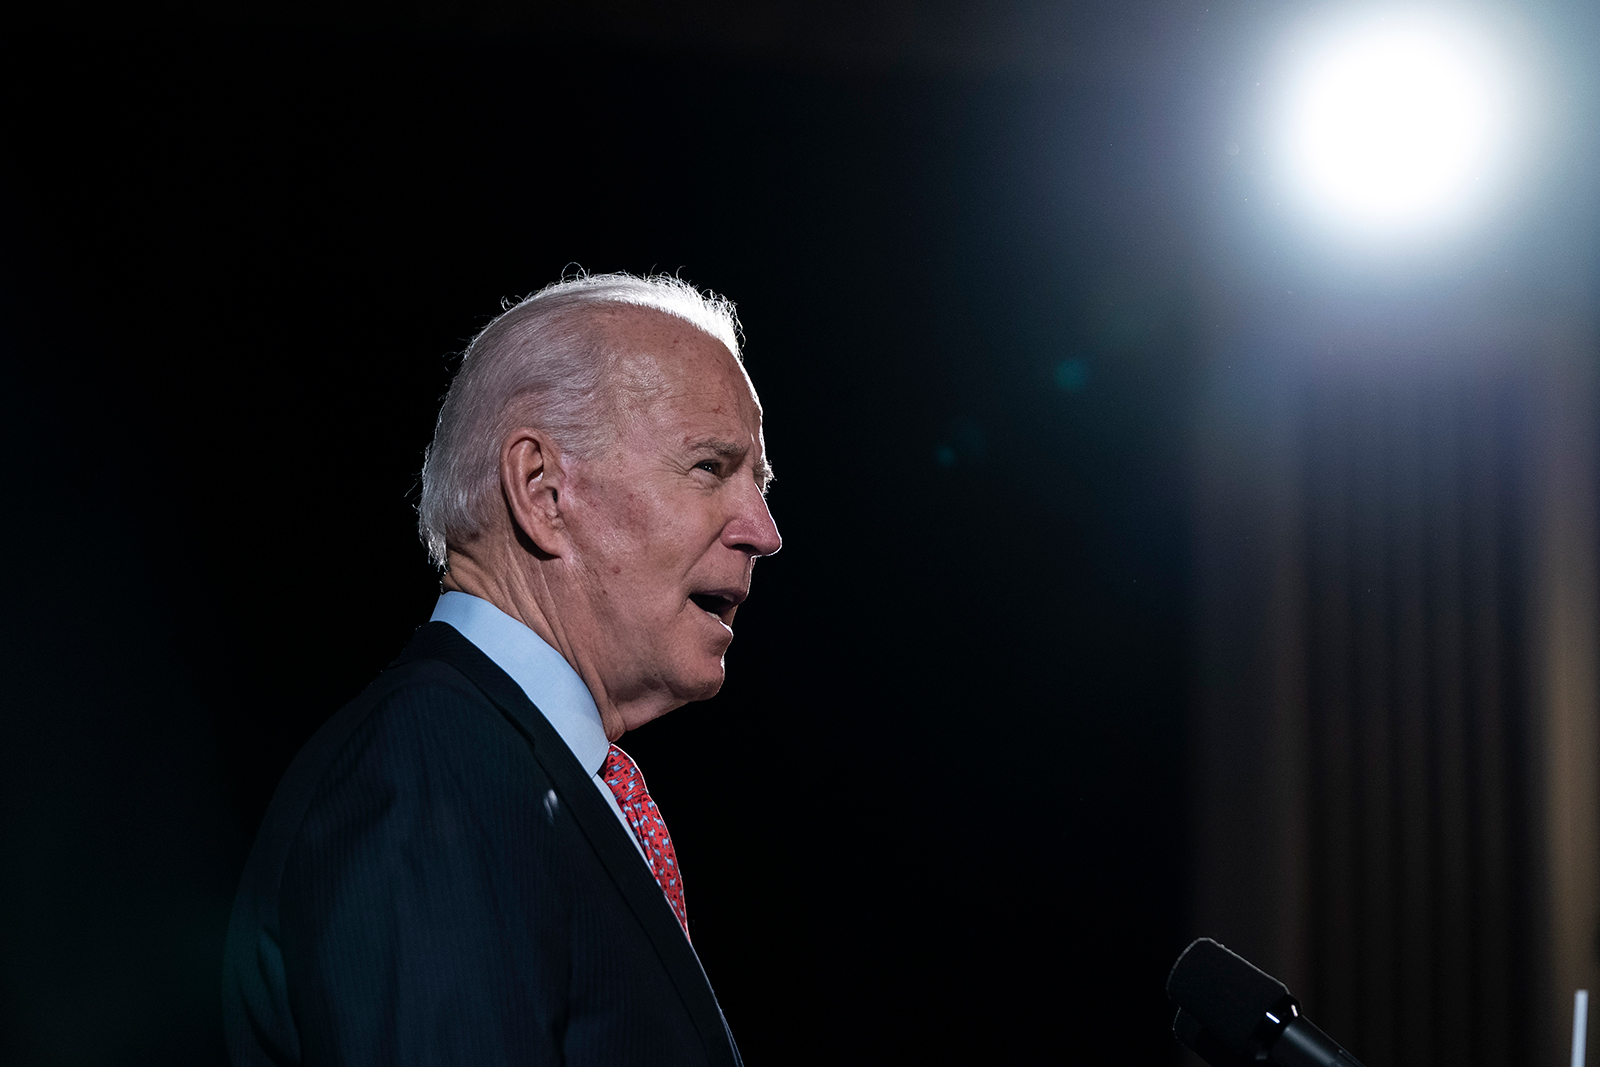 Joe Biden speaks about the coronavirus outbreak in Wilmington, Delaware, on March 12.